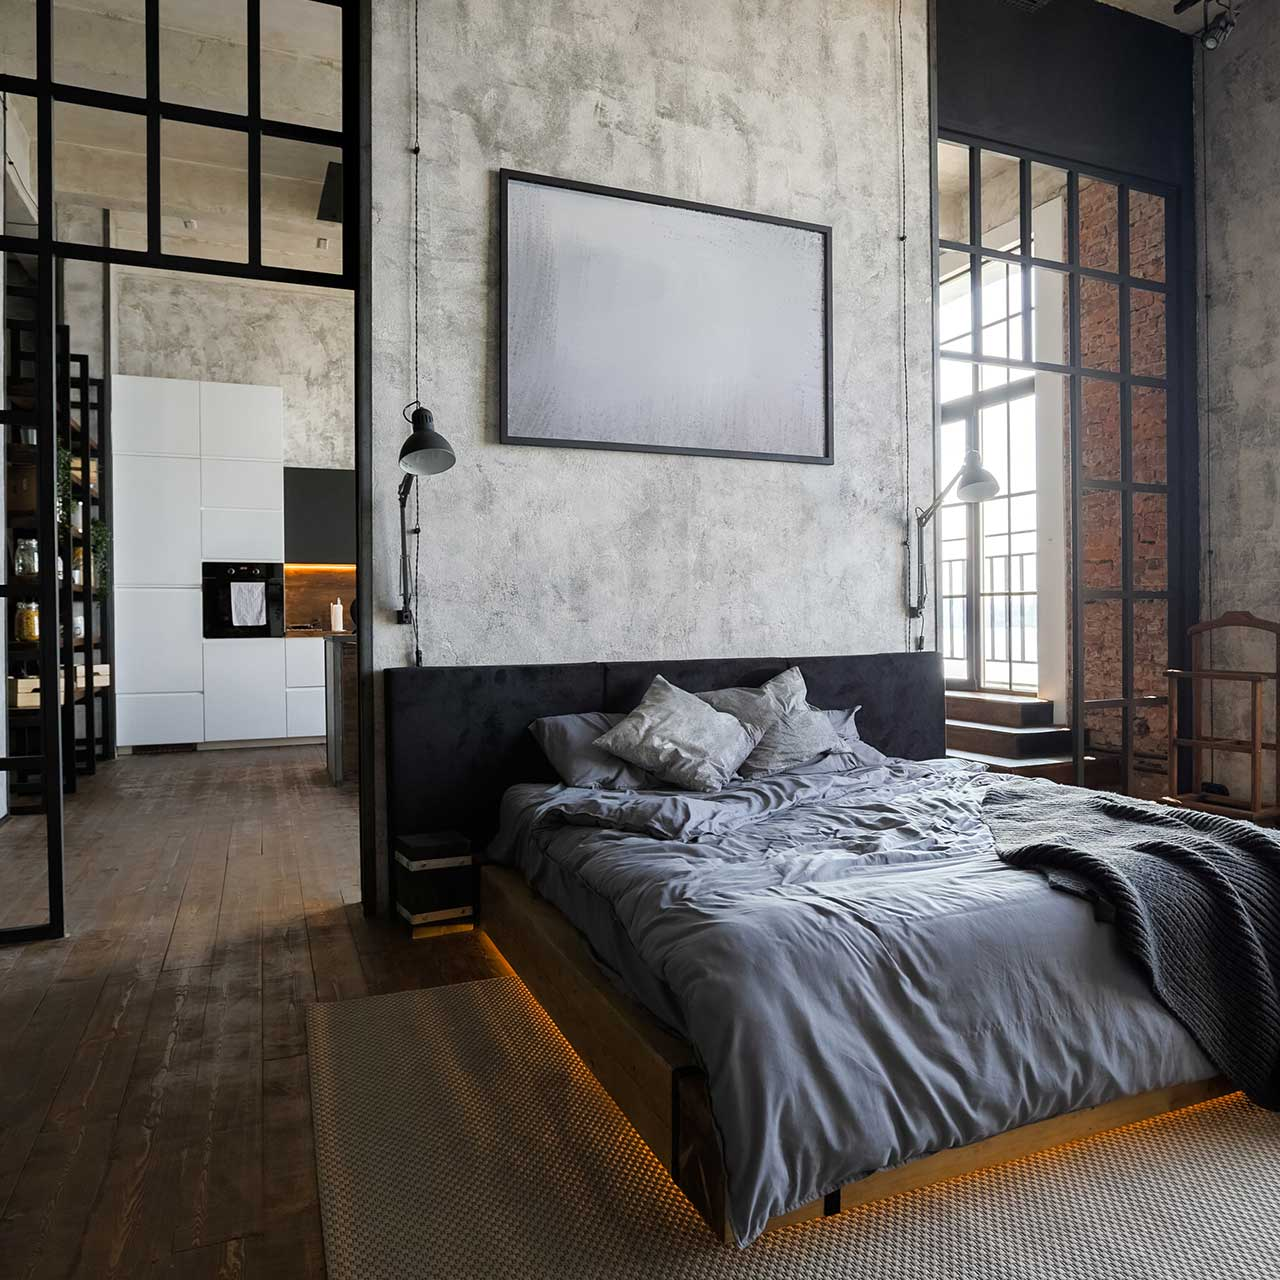 modern style of window panes for industrial style bedroom design